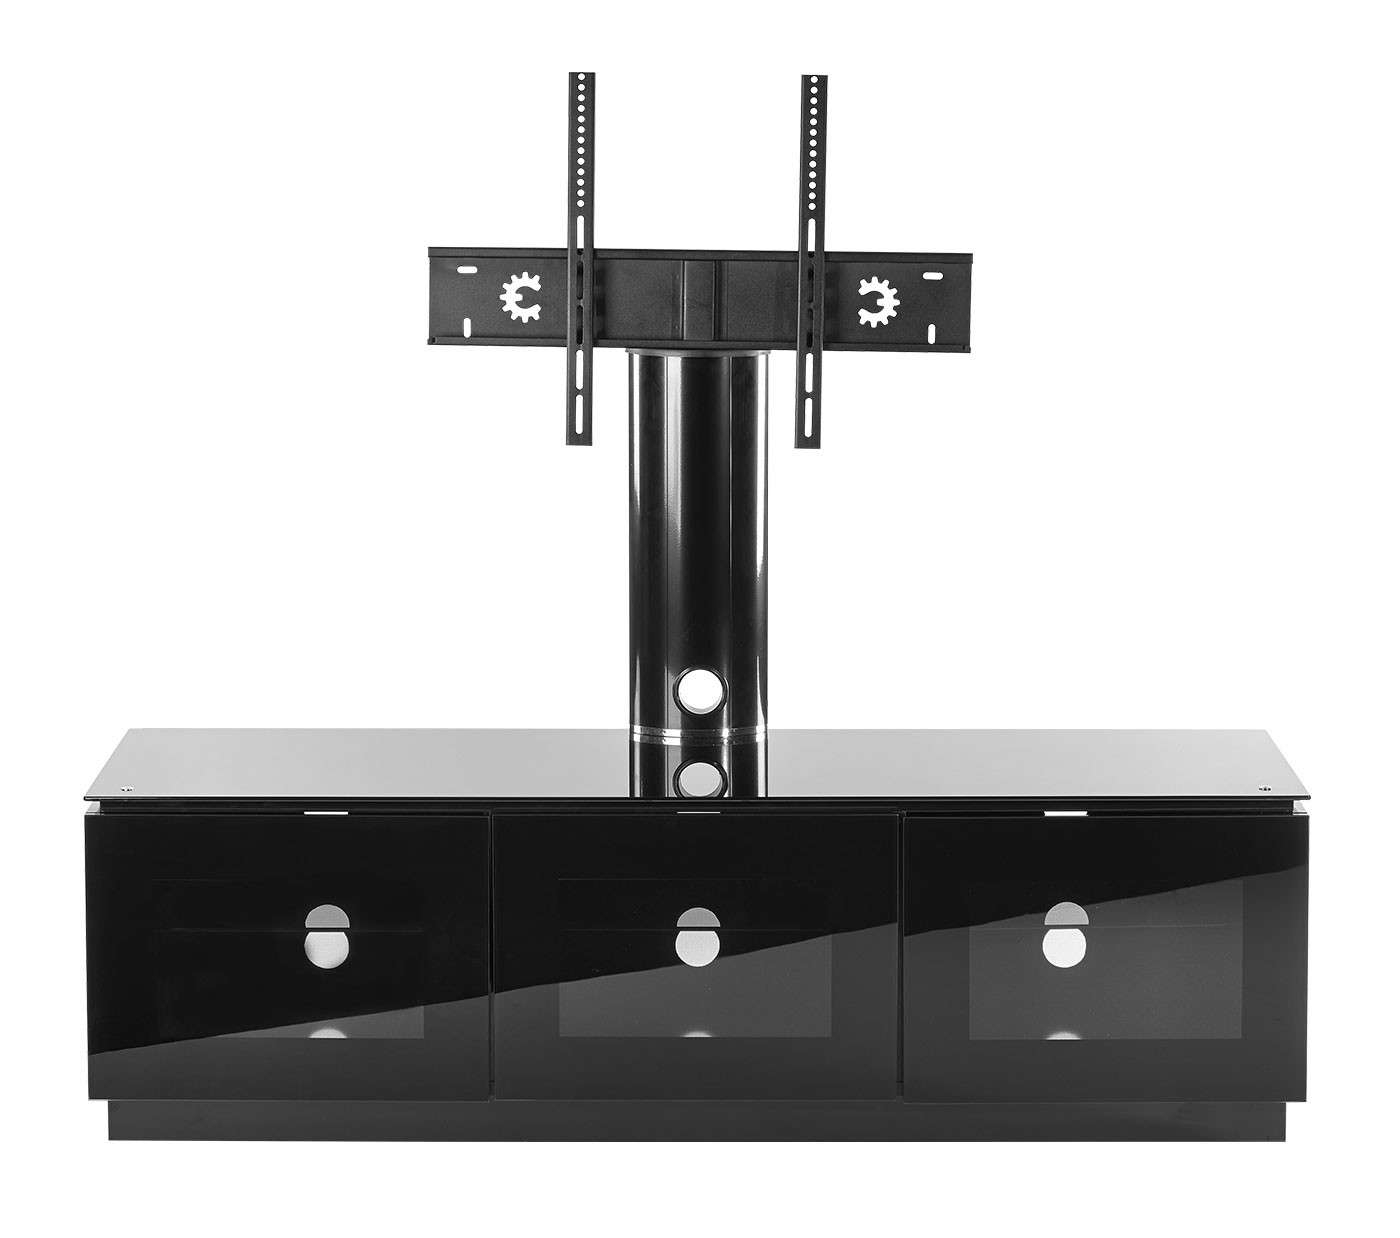 Black Tv Cabinet With Mount For Up To 65 Inch Tv | Mmt D1500 Xarm With Tv Stands Black Gloss (View 3 of 15)